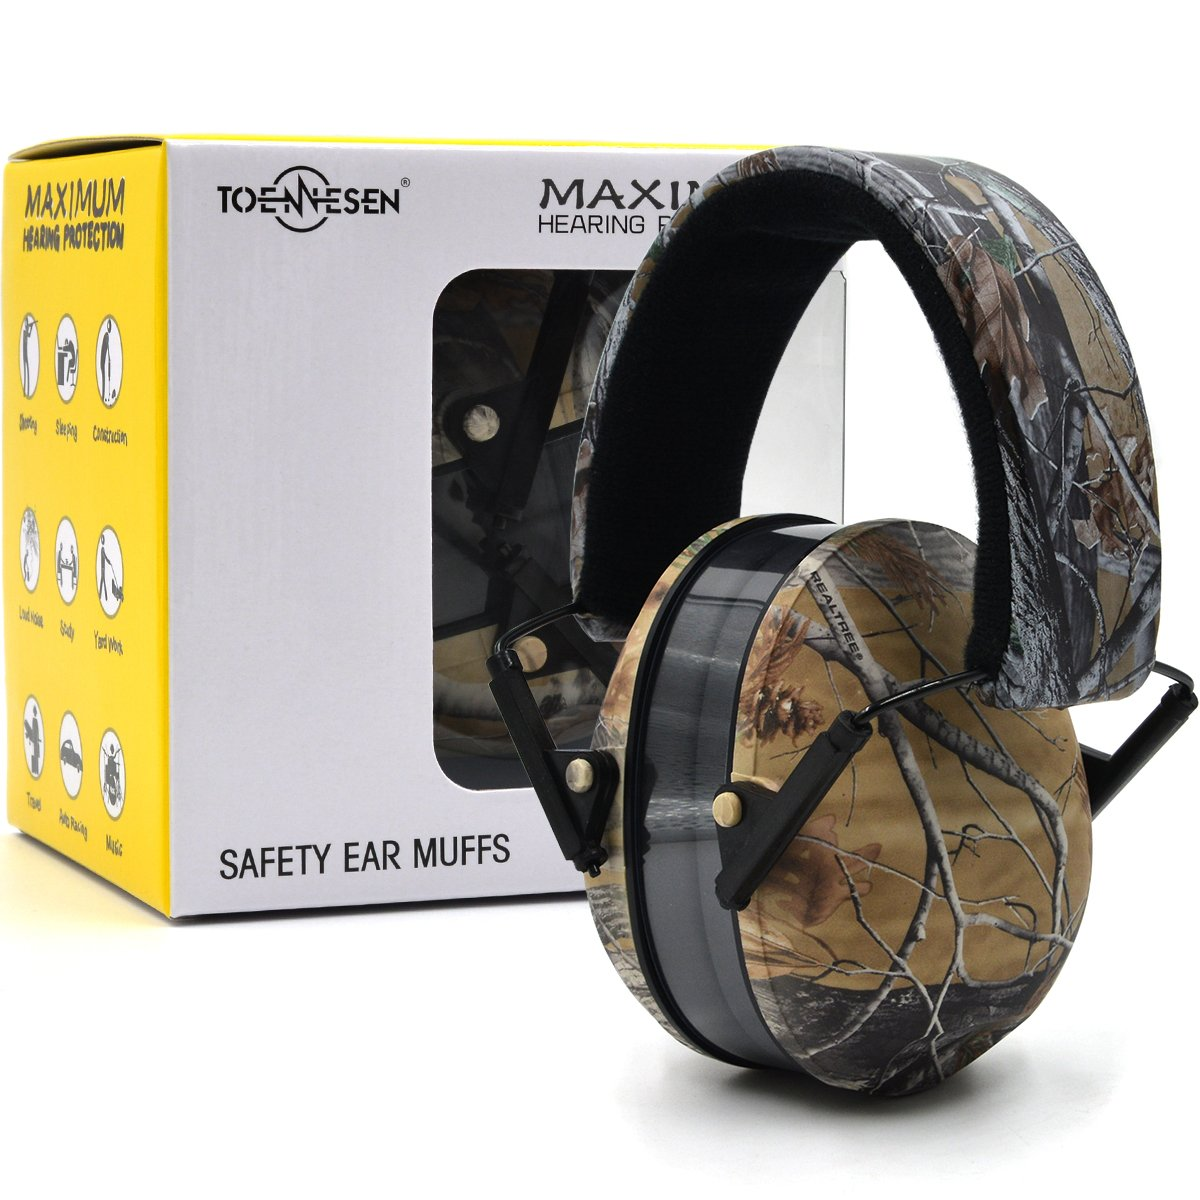 Toennesen Shooting Range Noise Reduction Ear Muffs Adjustable Hearing Protection Padded Sponge Earcups Noise Cancelling Earphones Safety Ear Defenders Fits Adults to Kids Camo Flannel